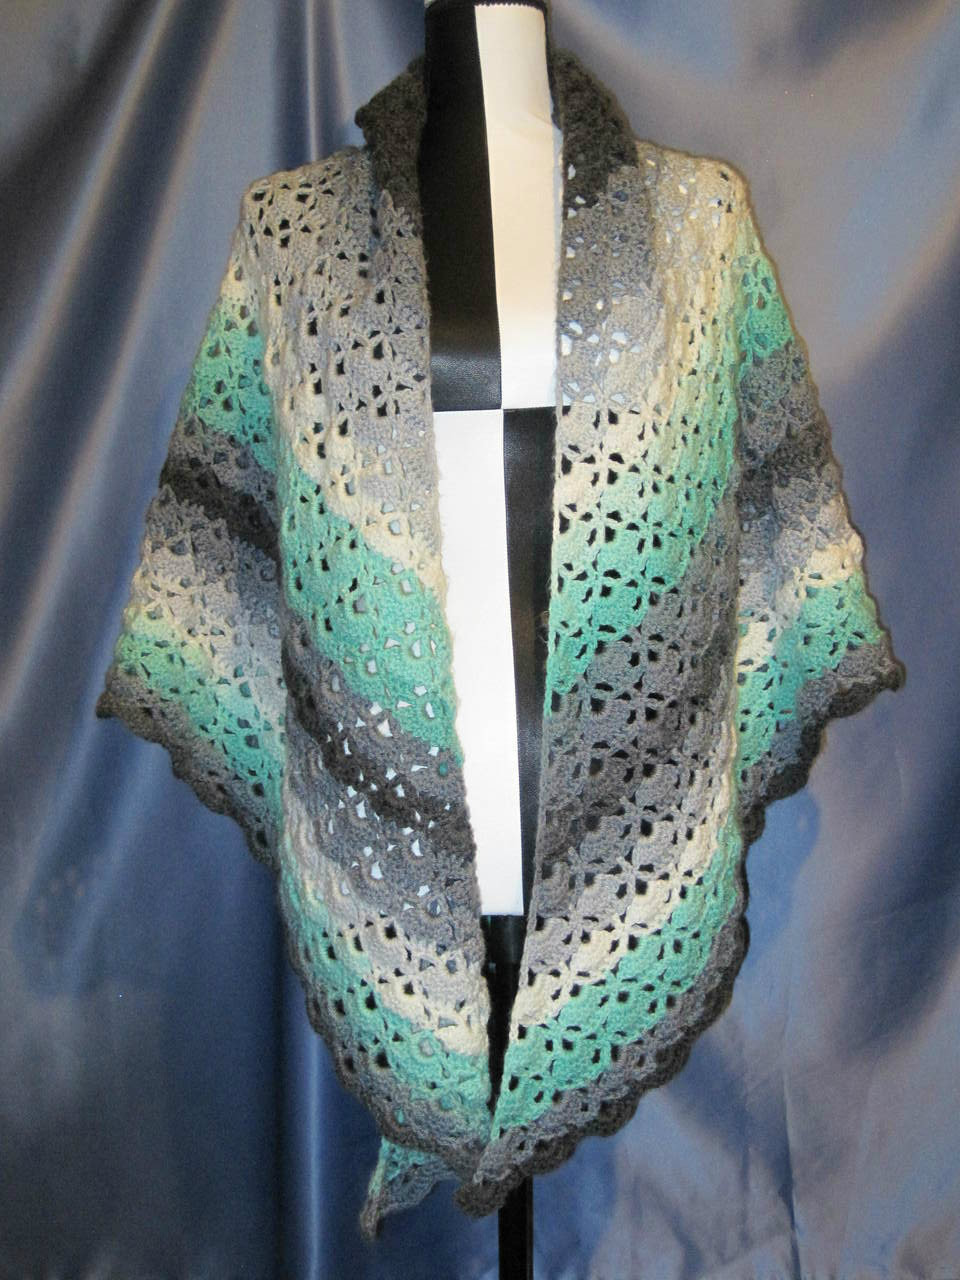 Cloister Shell Shawl in Greens and Greys by Mumsie of S